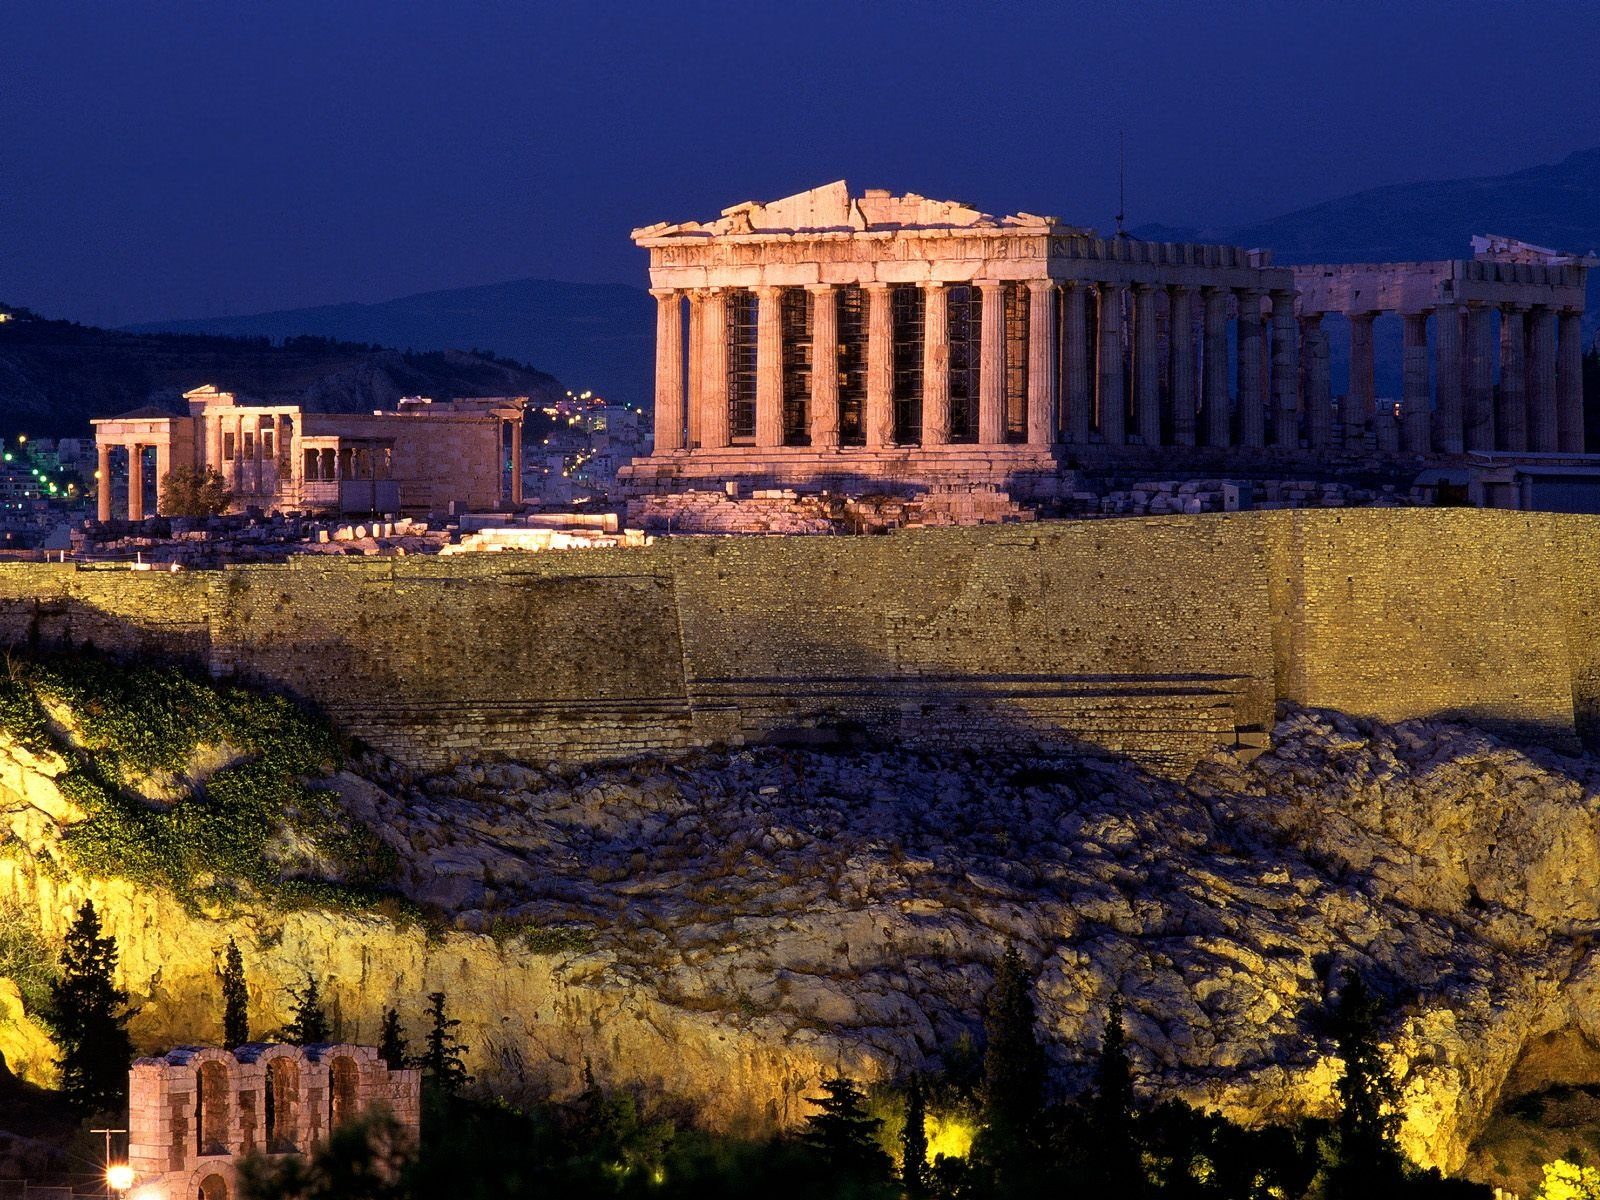 Best Wallpaper Night Greece - the_acropolis_wallpaper_greece_world_1957  Gallery-27307.jpg